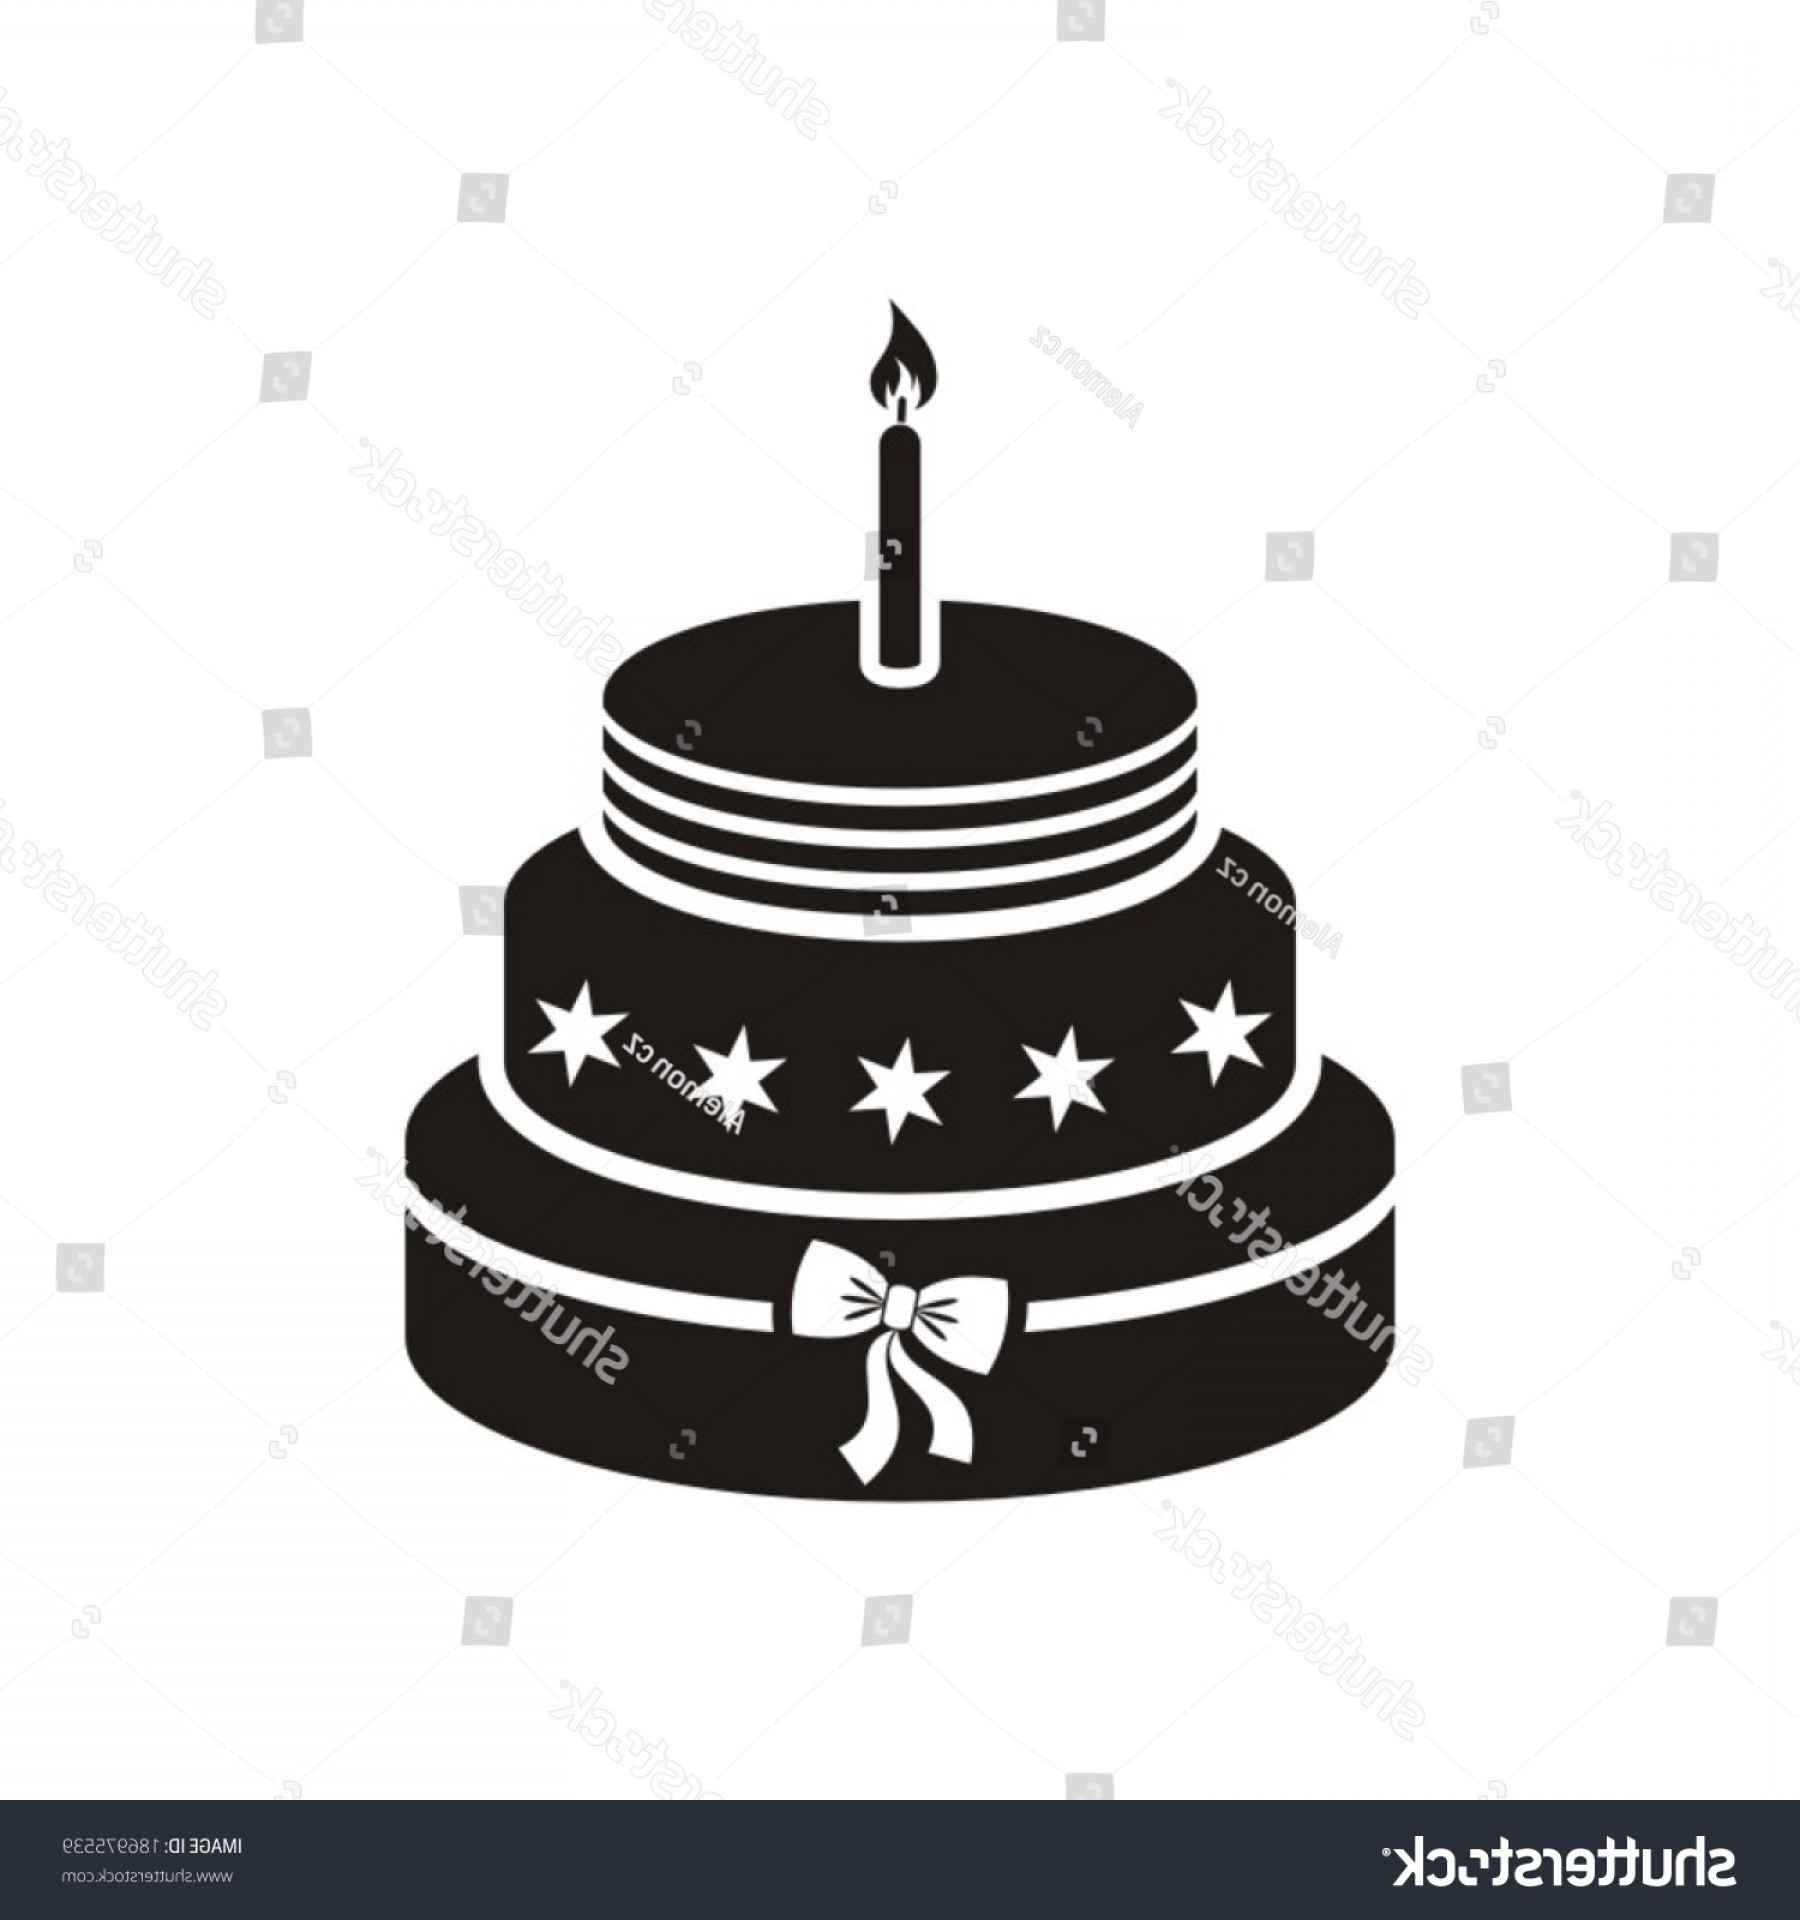 Candle Vector Black: Black Vector Birthday Cake One Candle